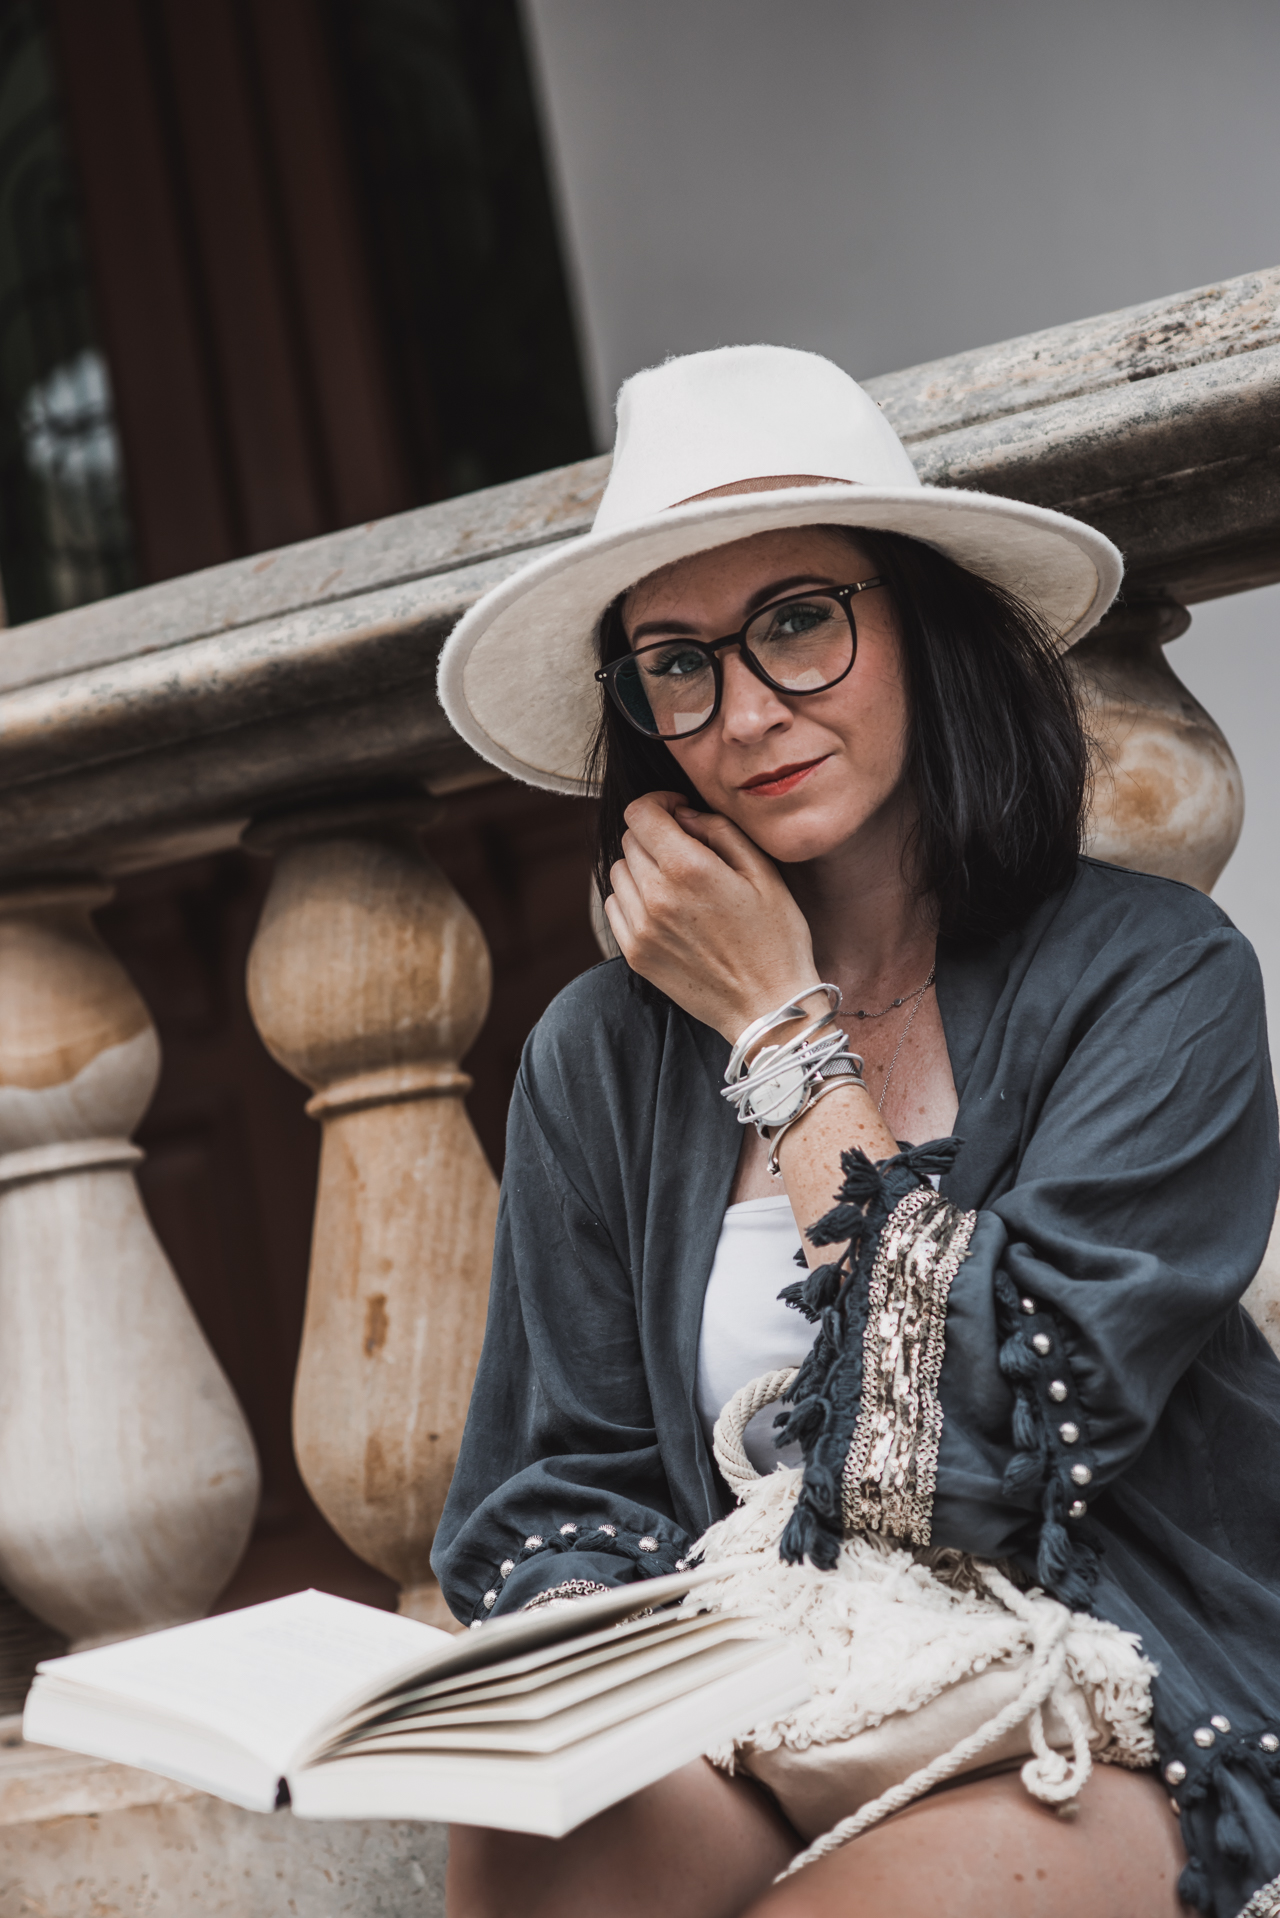 My glasses from Lunor - timeless, classic, sustainable Julie's Dresscode Fashion & Lifestyle Blog